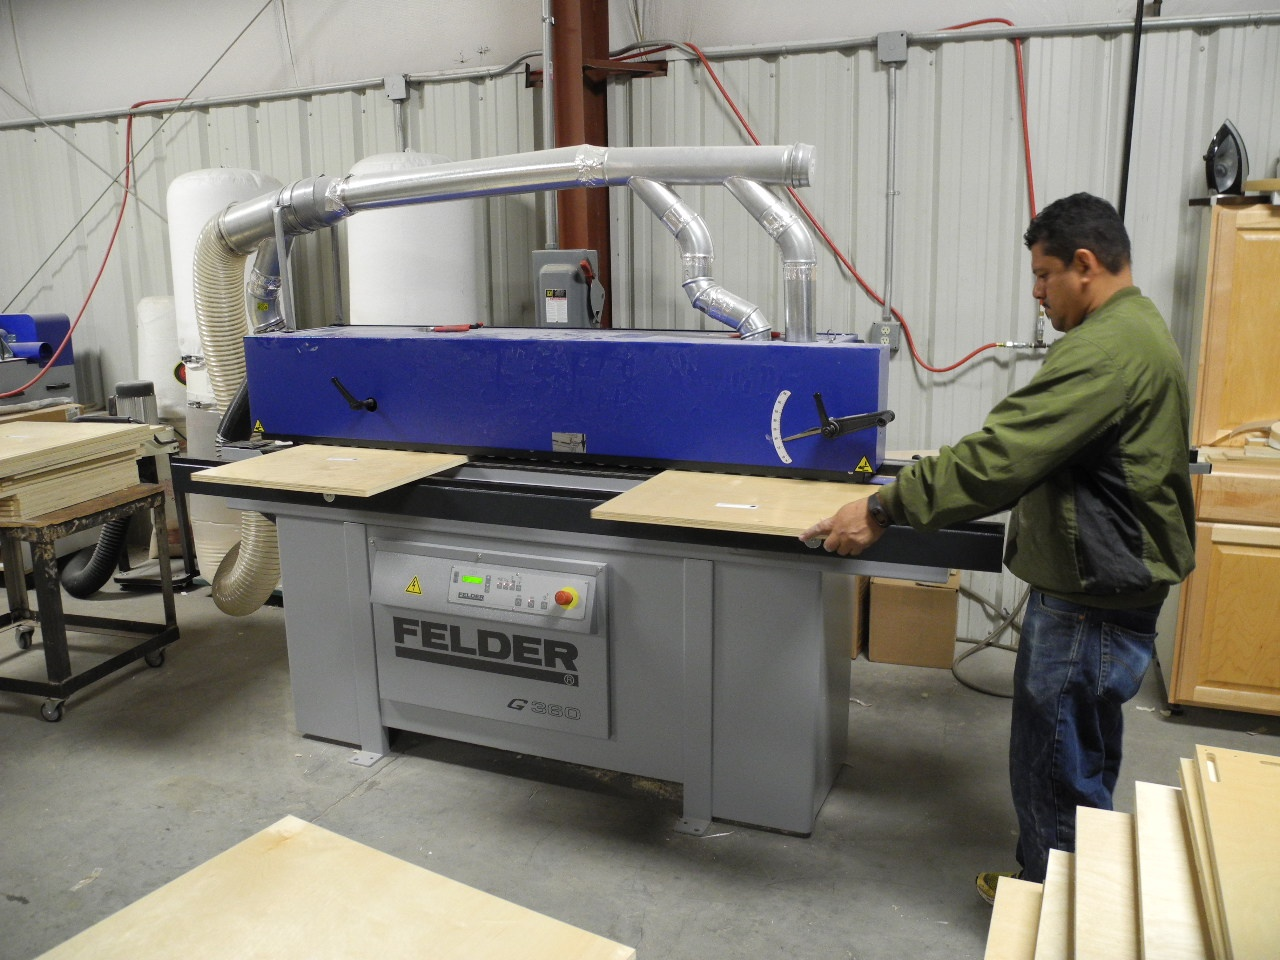 A Felder G360 edgebander is being used to edgeband cabinet parts.